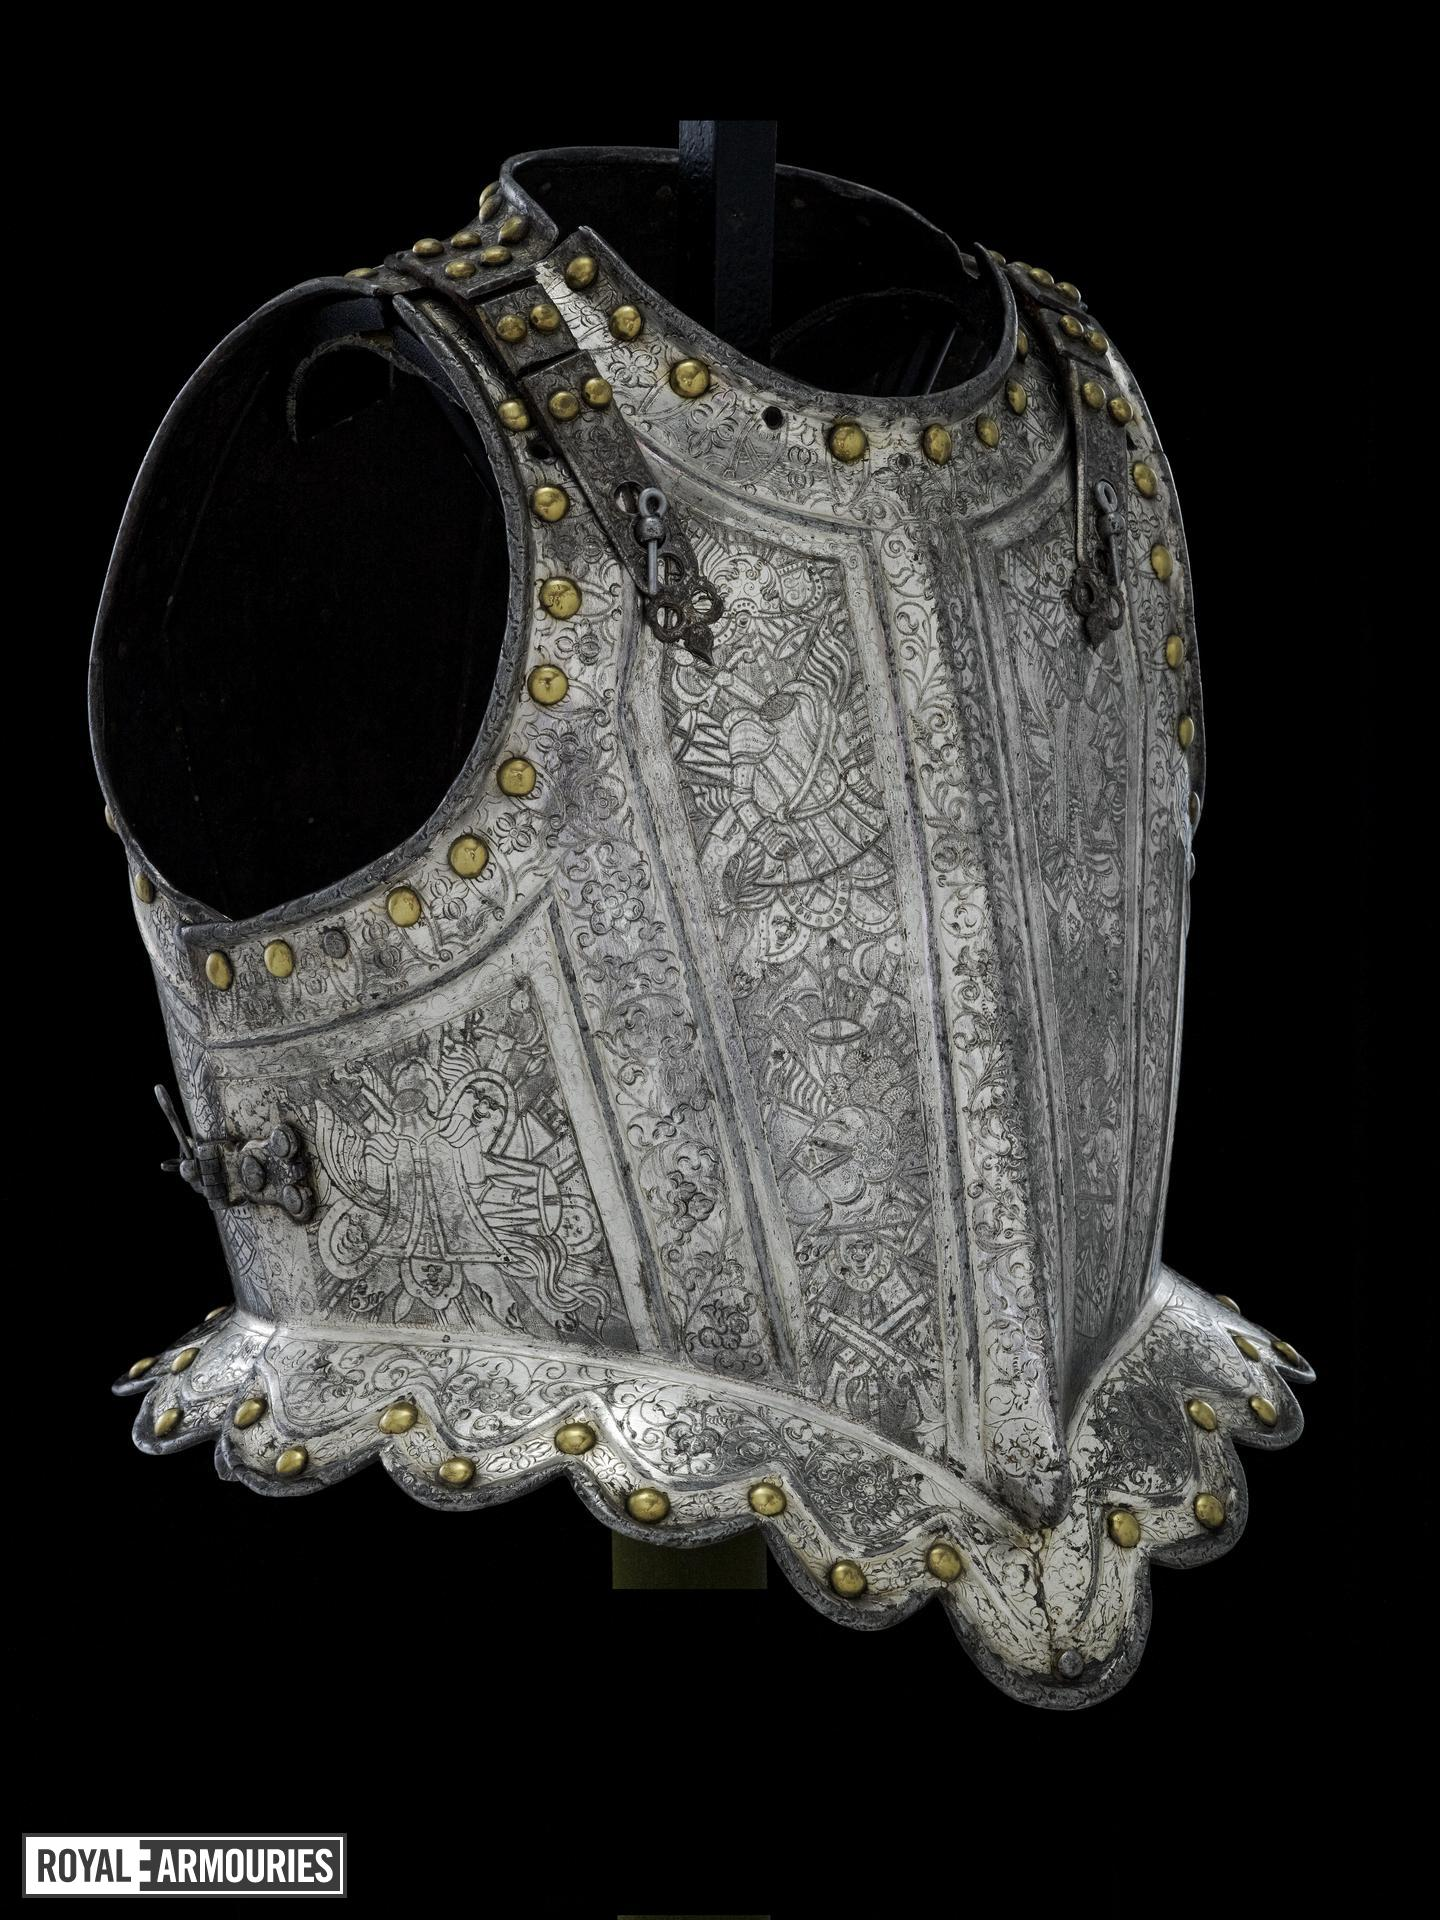 Harquebusier's armour of Charles, Prince of Wales, later King Charles II